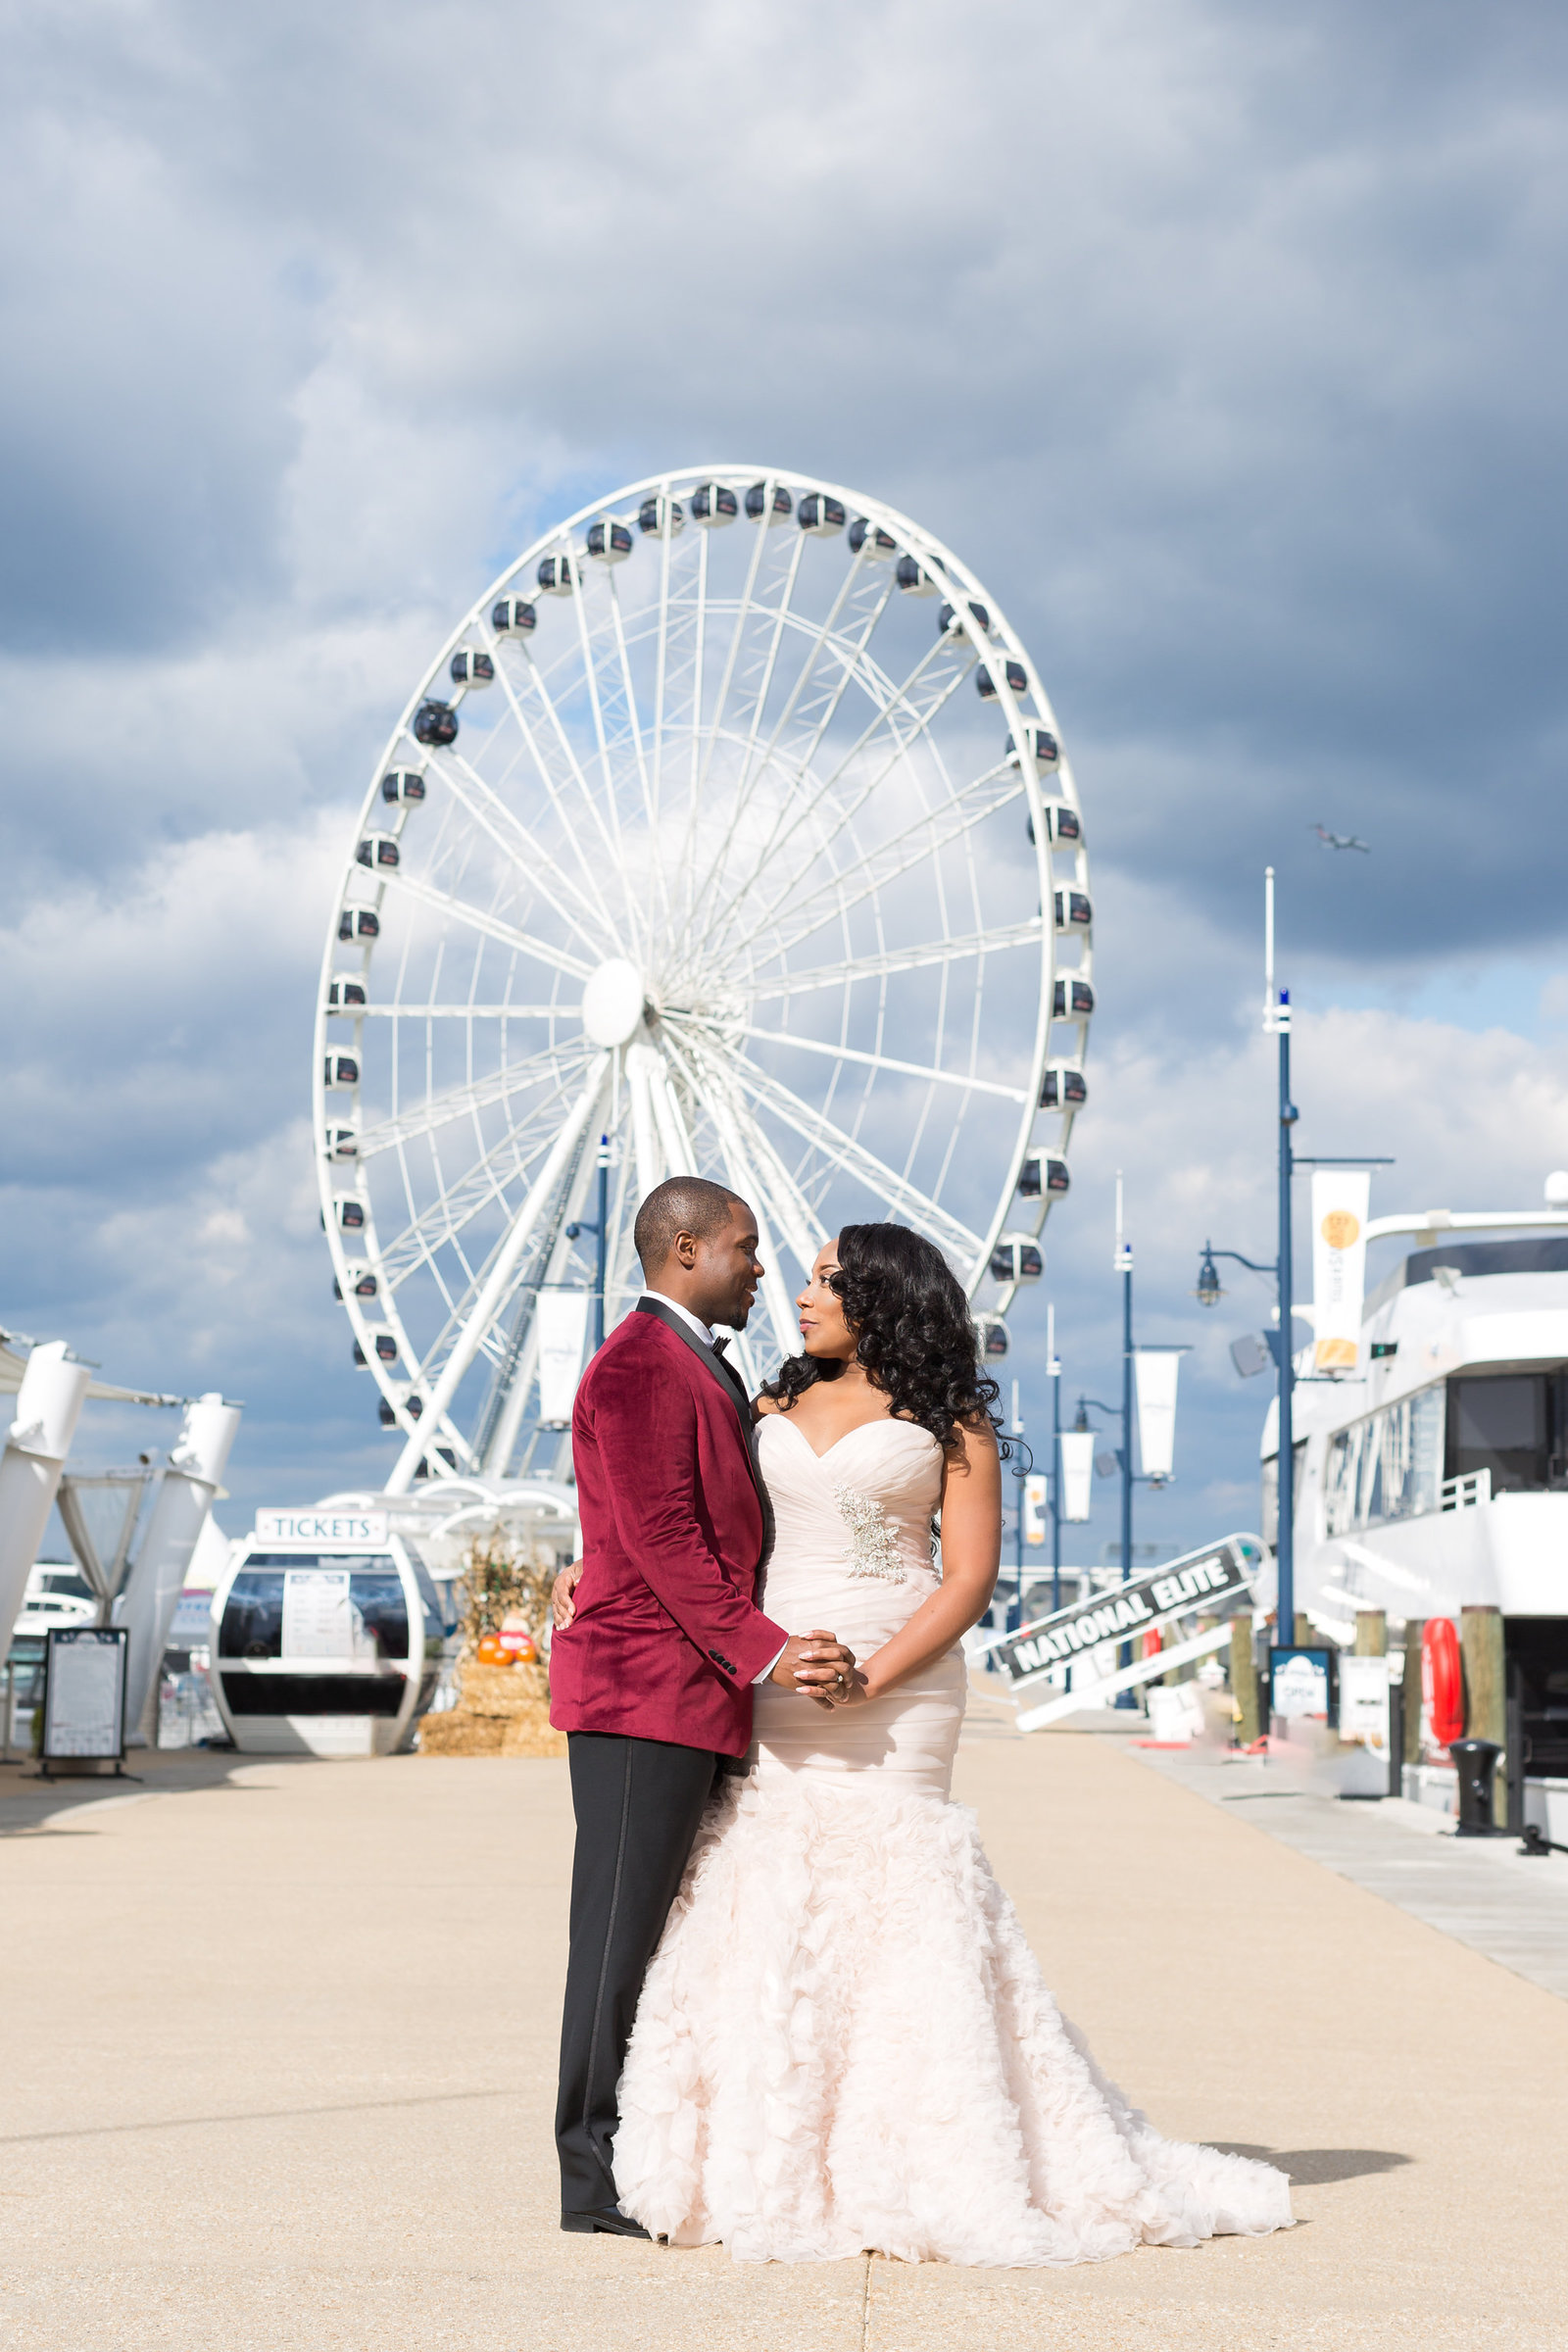 Atlanta wedding photographers - Mecca Gamble - Theodore wedding 2015